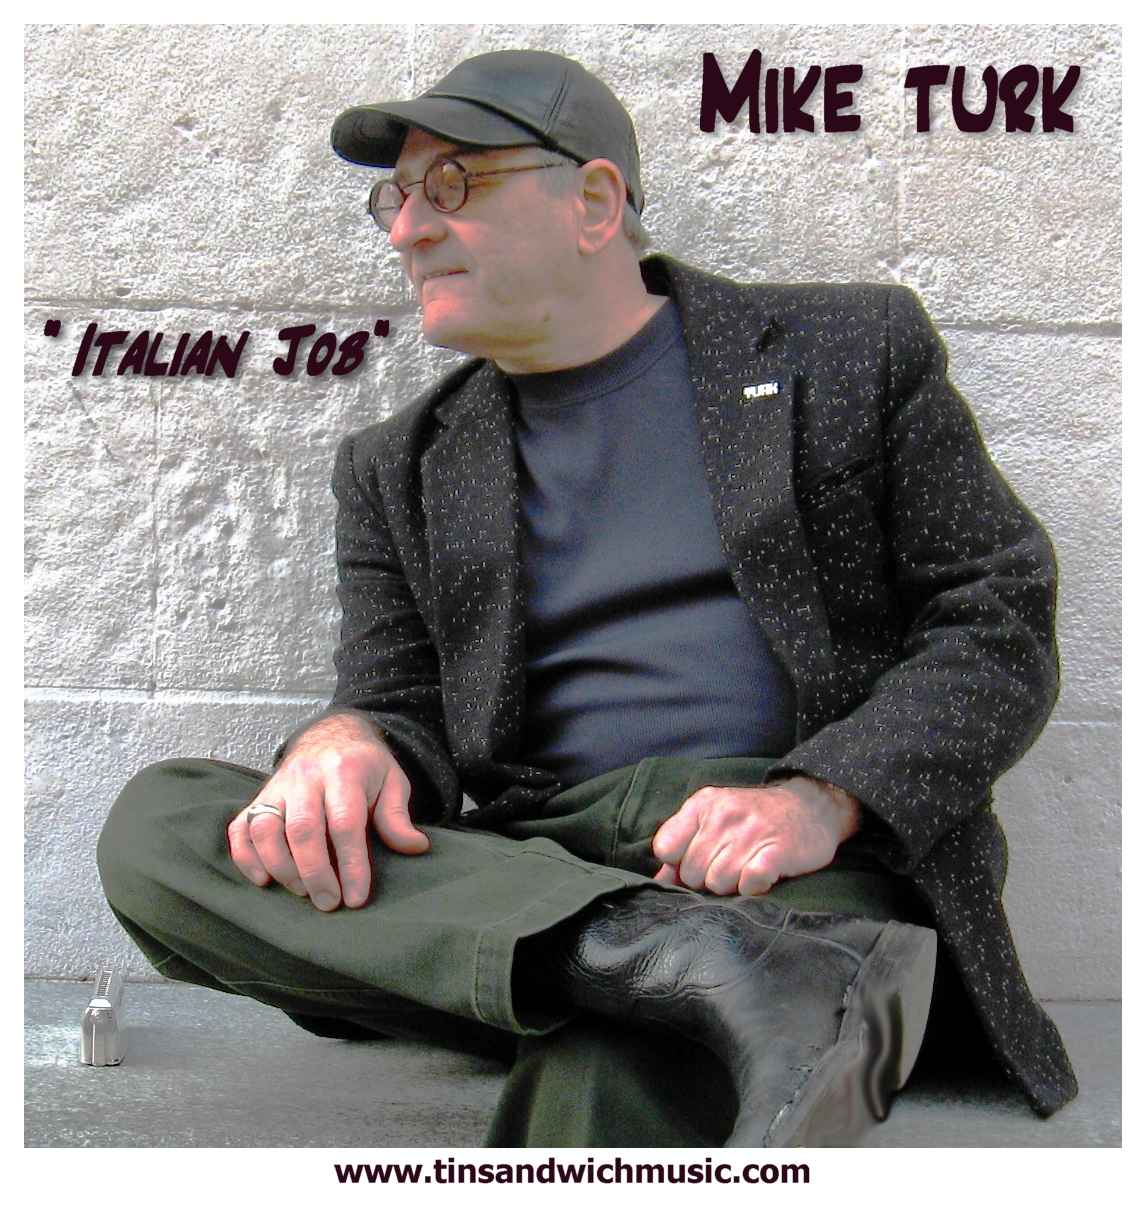 Mike Turk